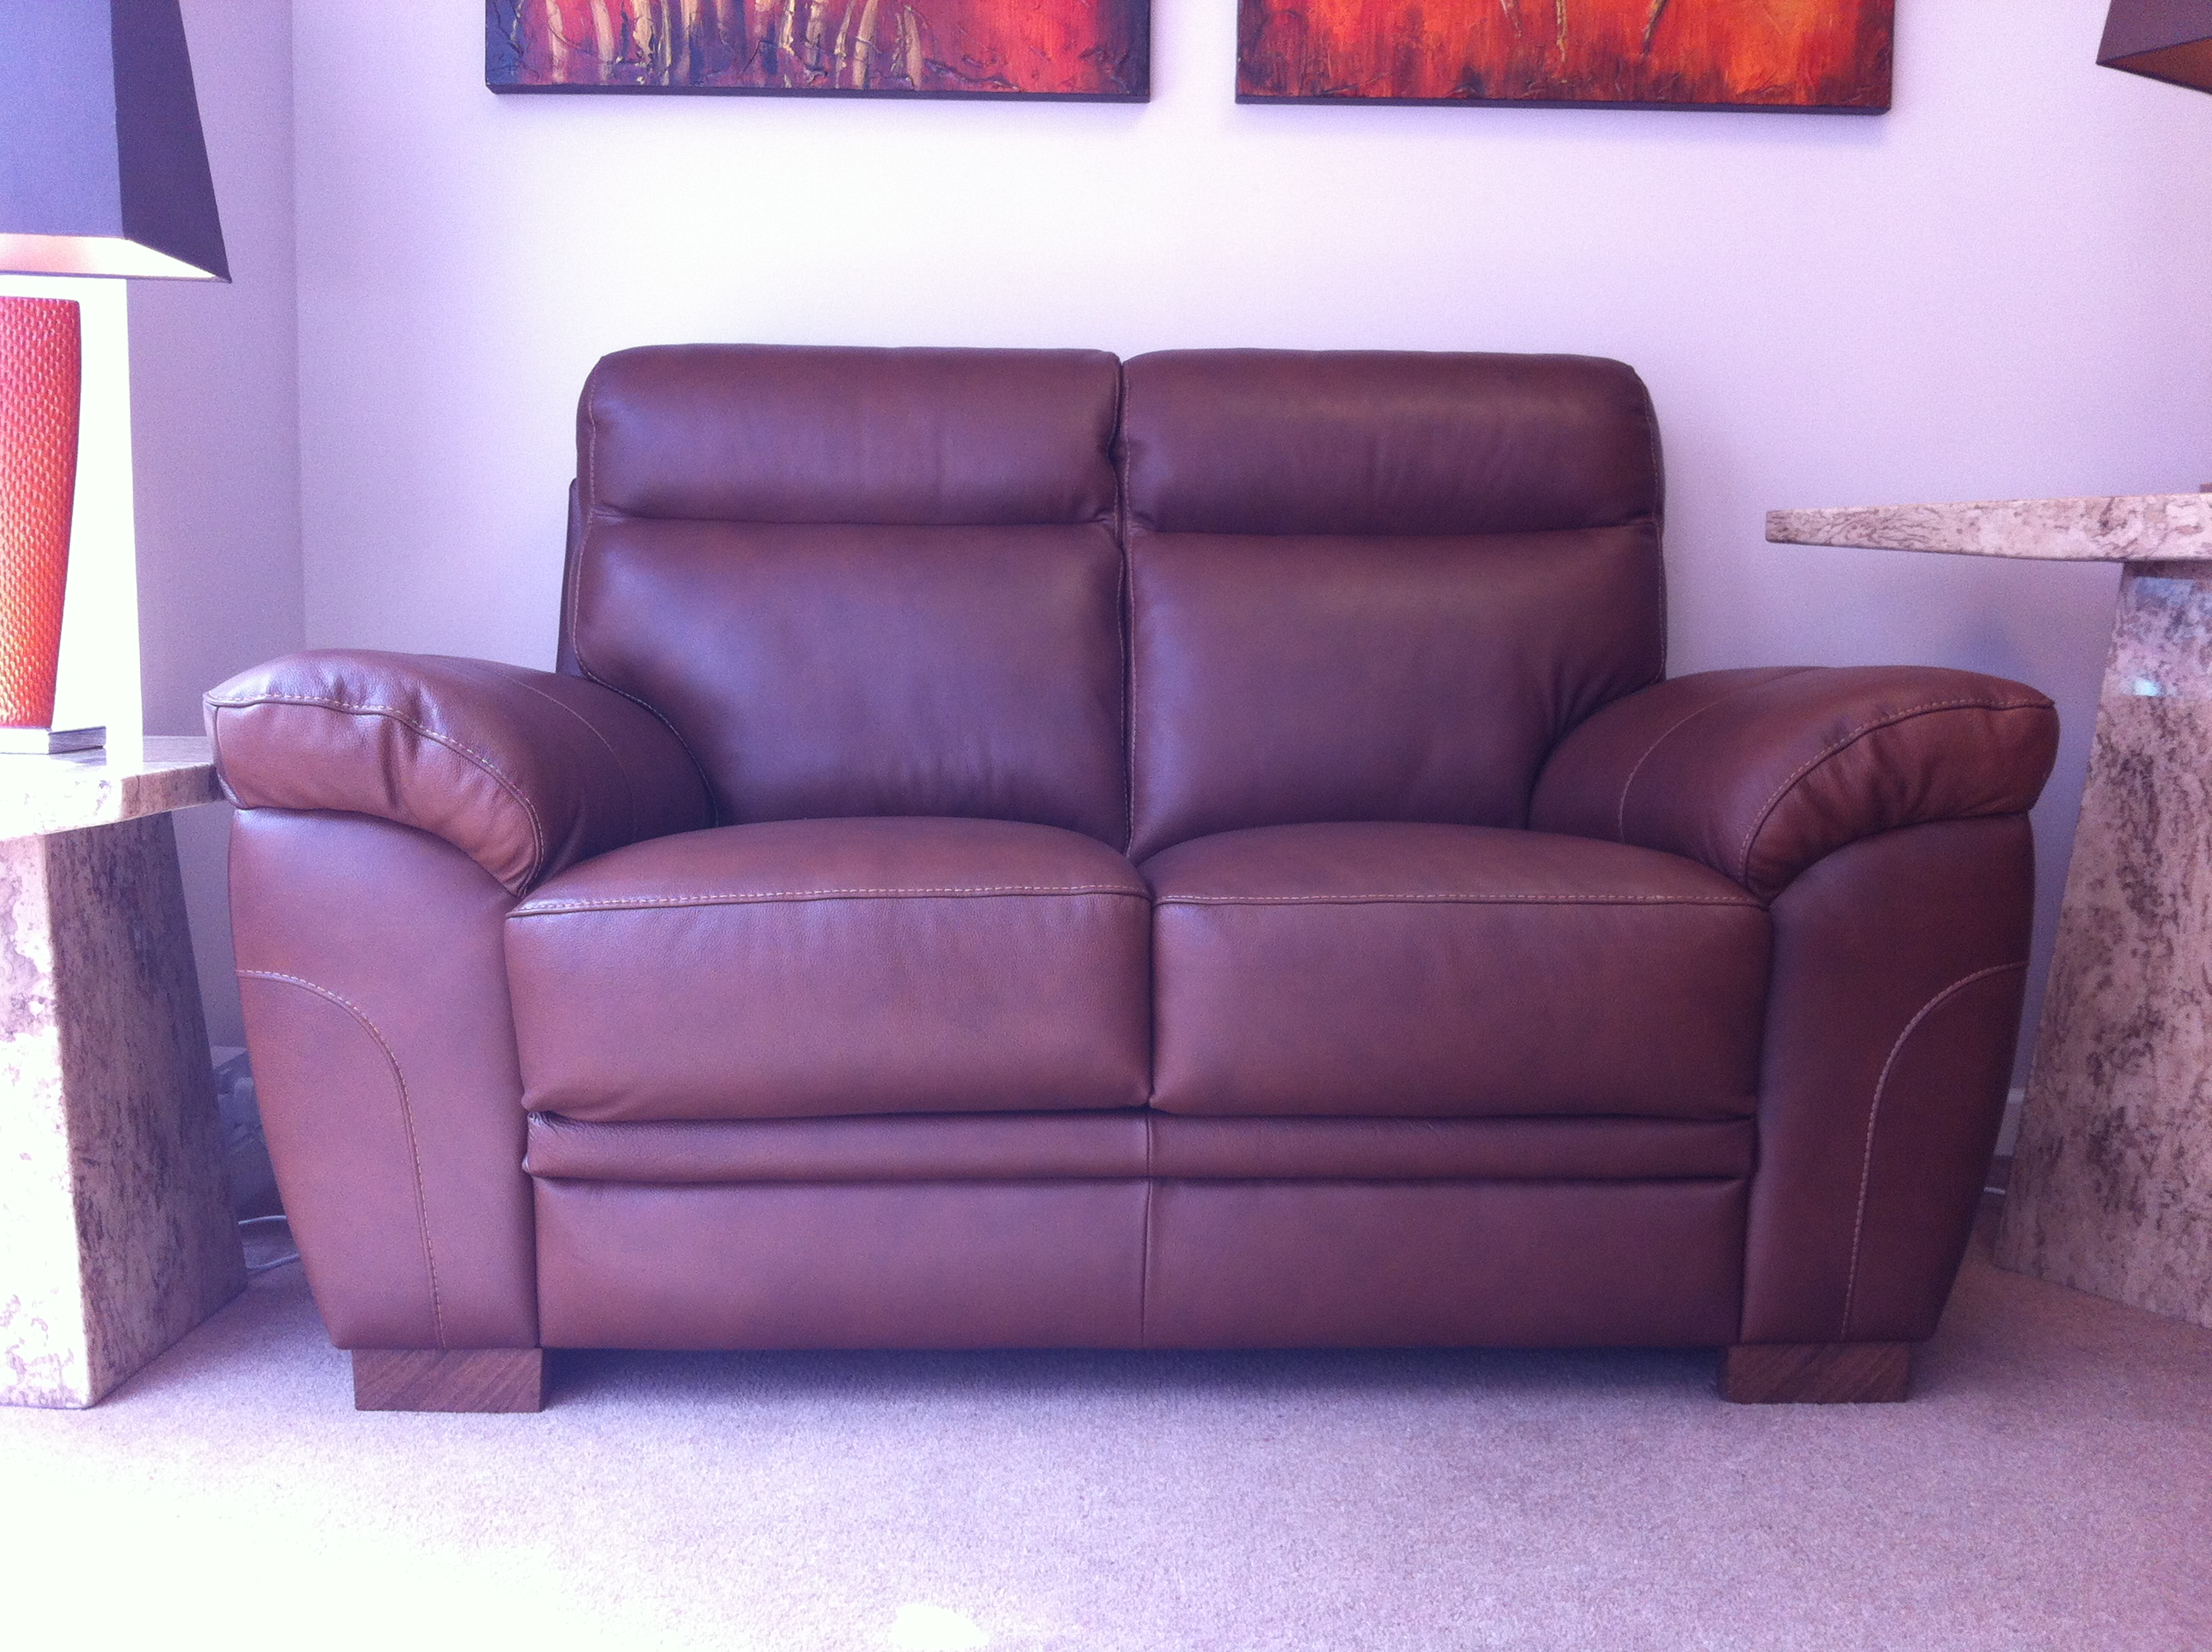 Cosmos 2.5 seater Sofa